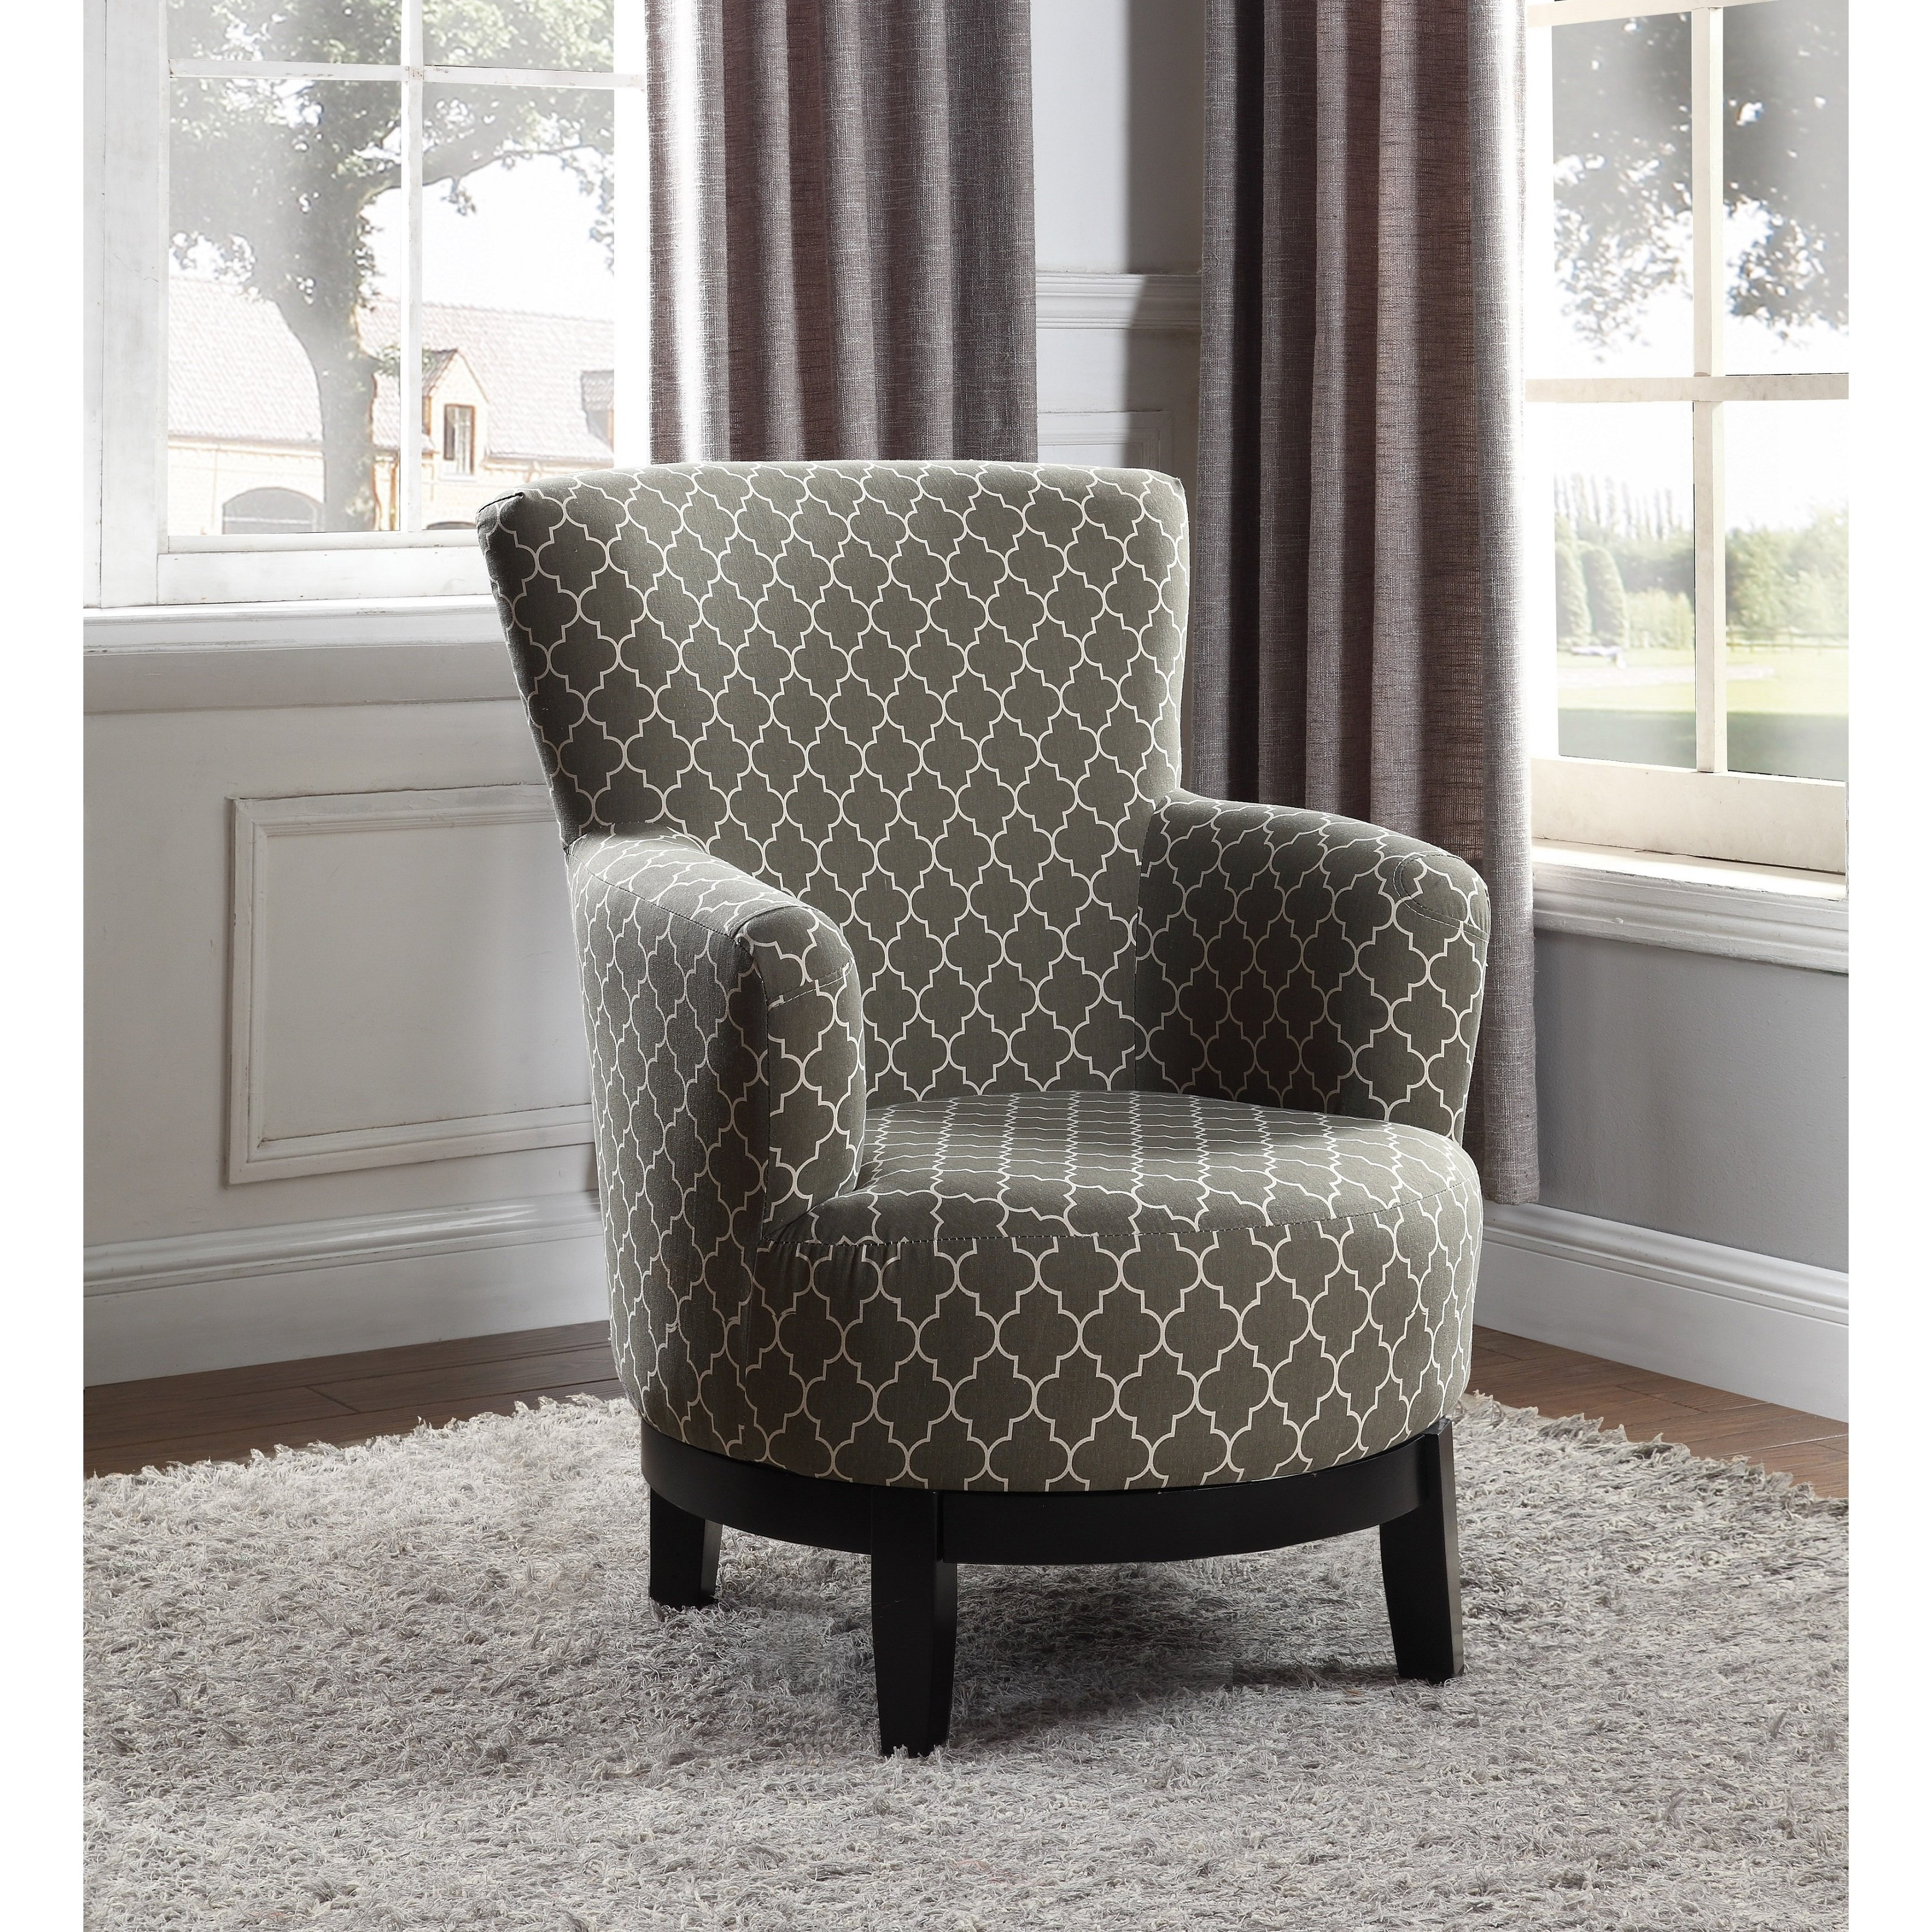 Shop Nathaniel Home London Swivel Accent Chair – Free Shipping Today Inside Umber Grey Swivel Accent Chairs (View 11 of 25)